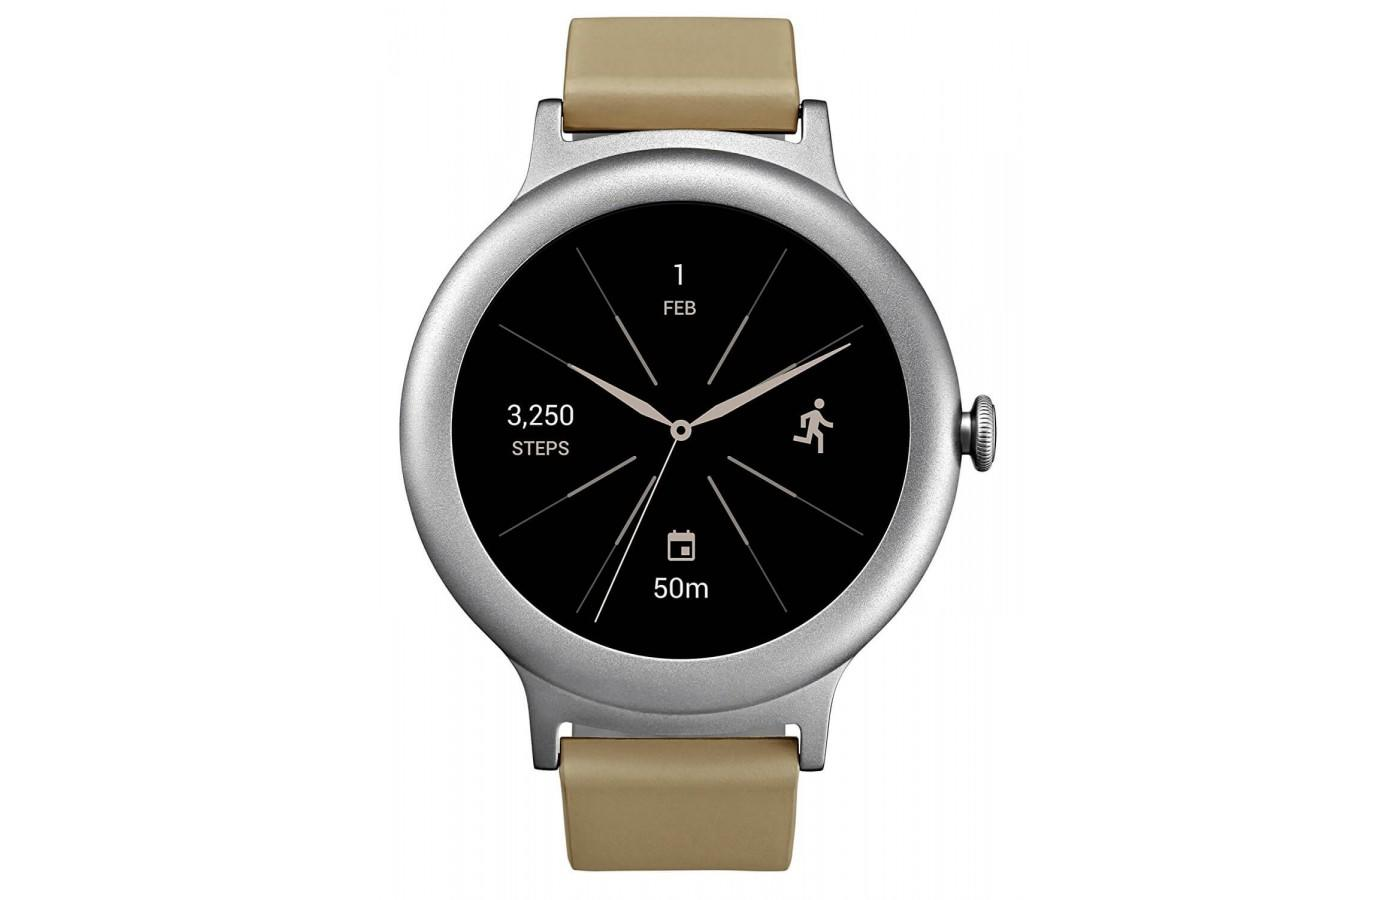 the LG Watch Style keeps track of distance and steps